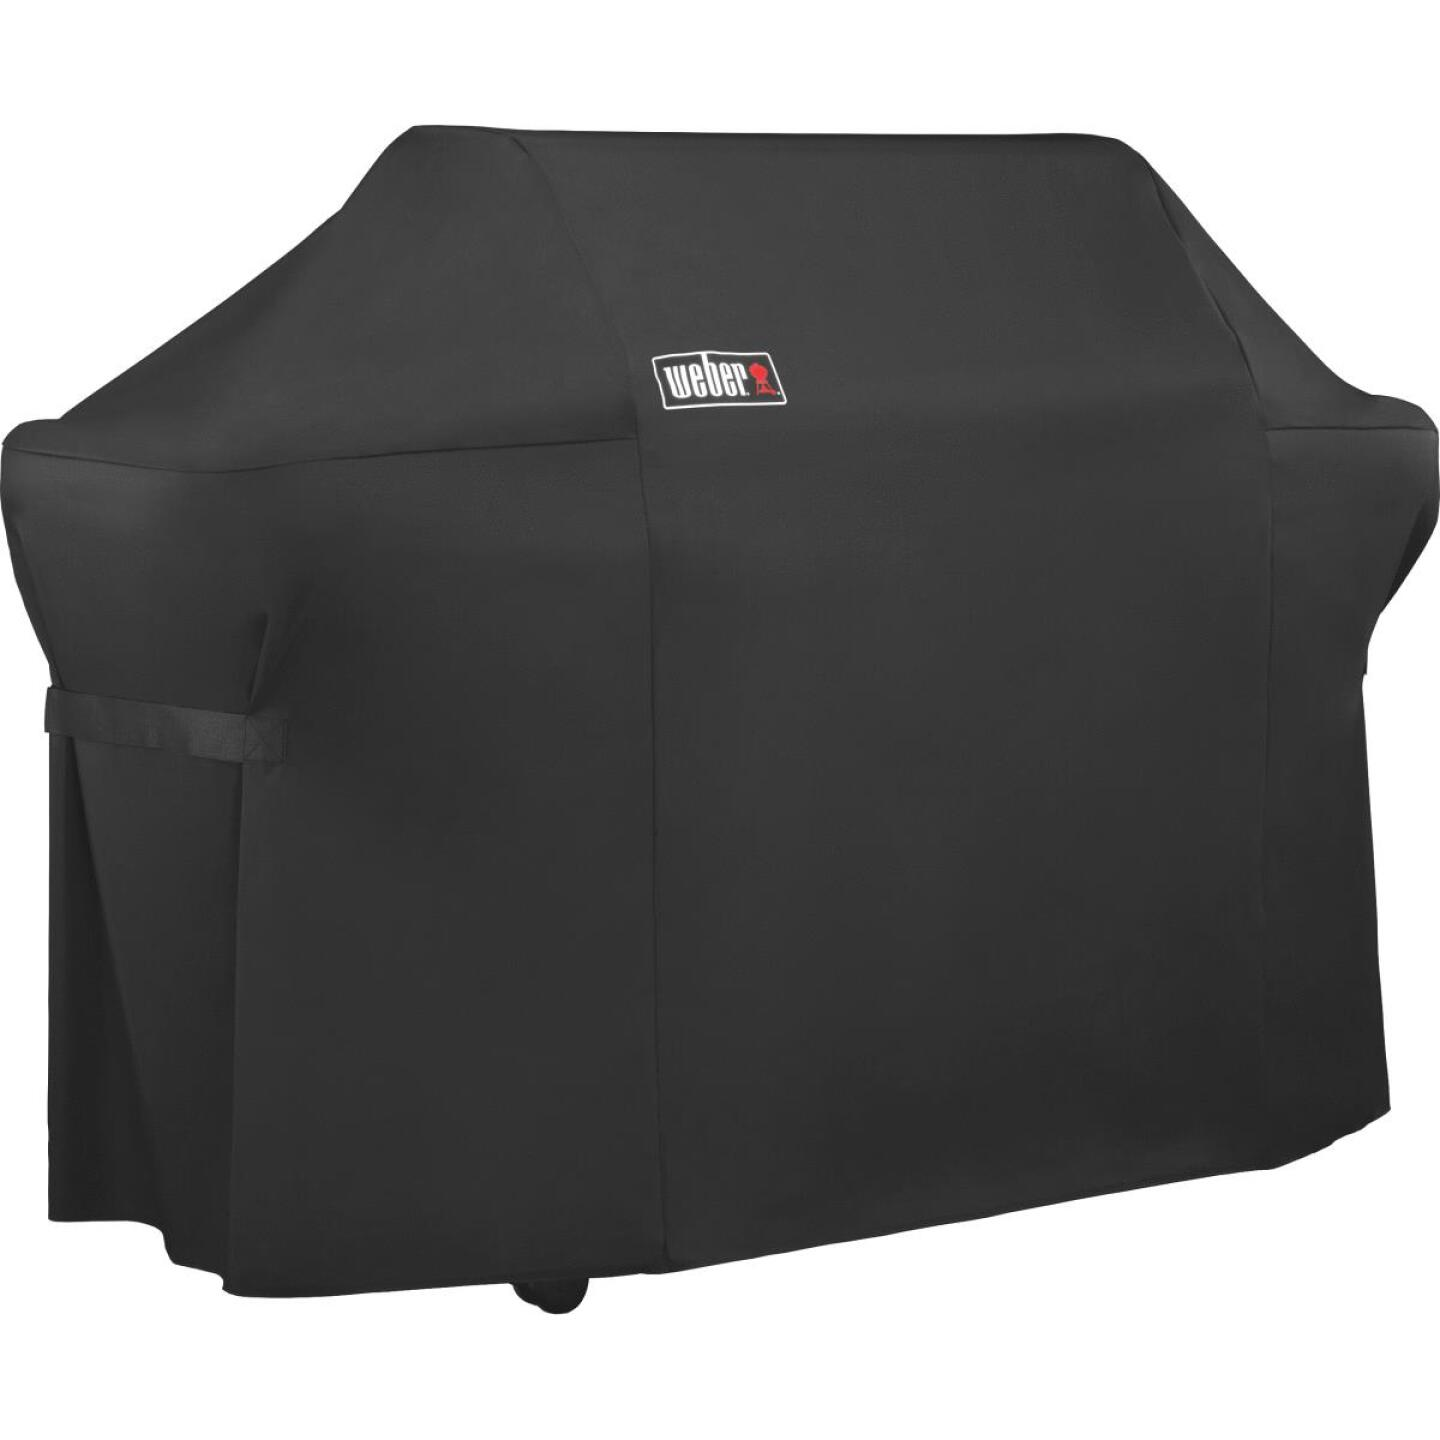 Weber Summit 600S Premium 75 In. Black Polyester Grill Cover Image 1